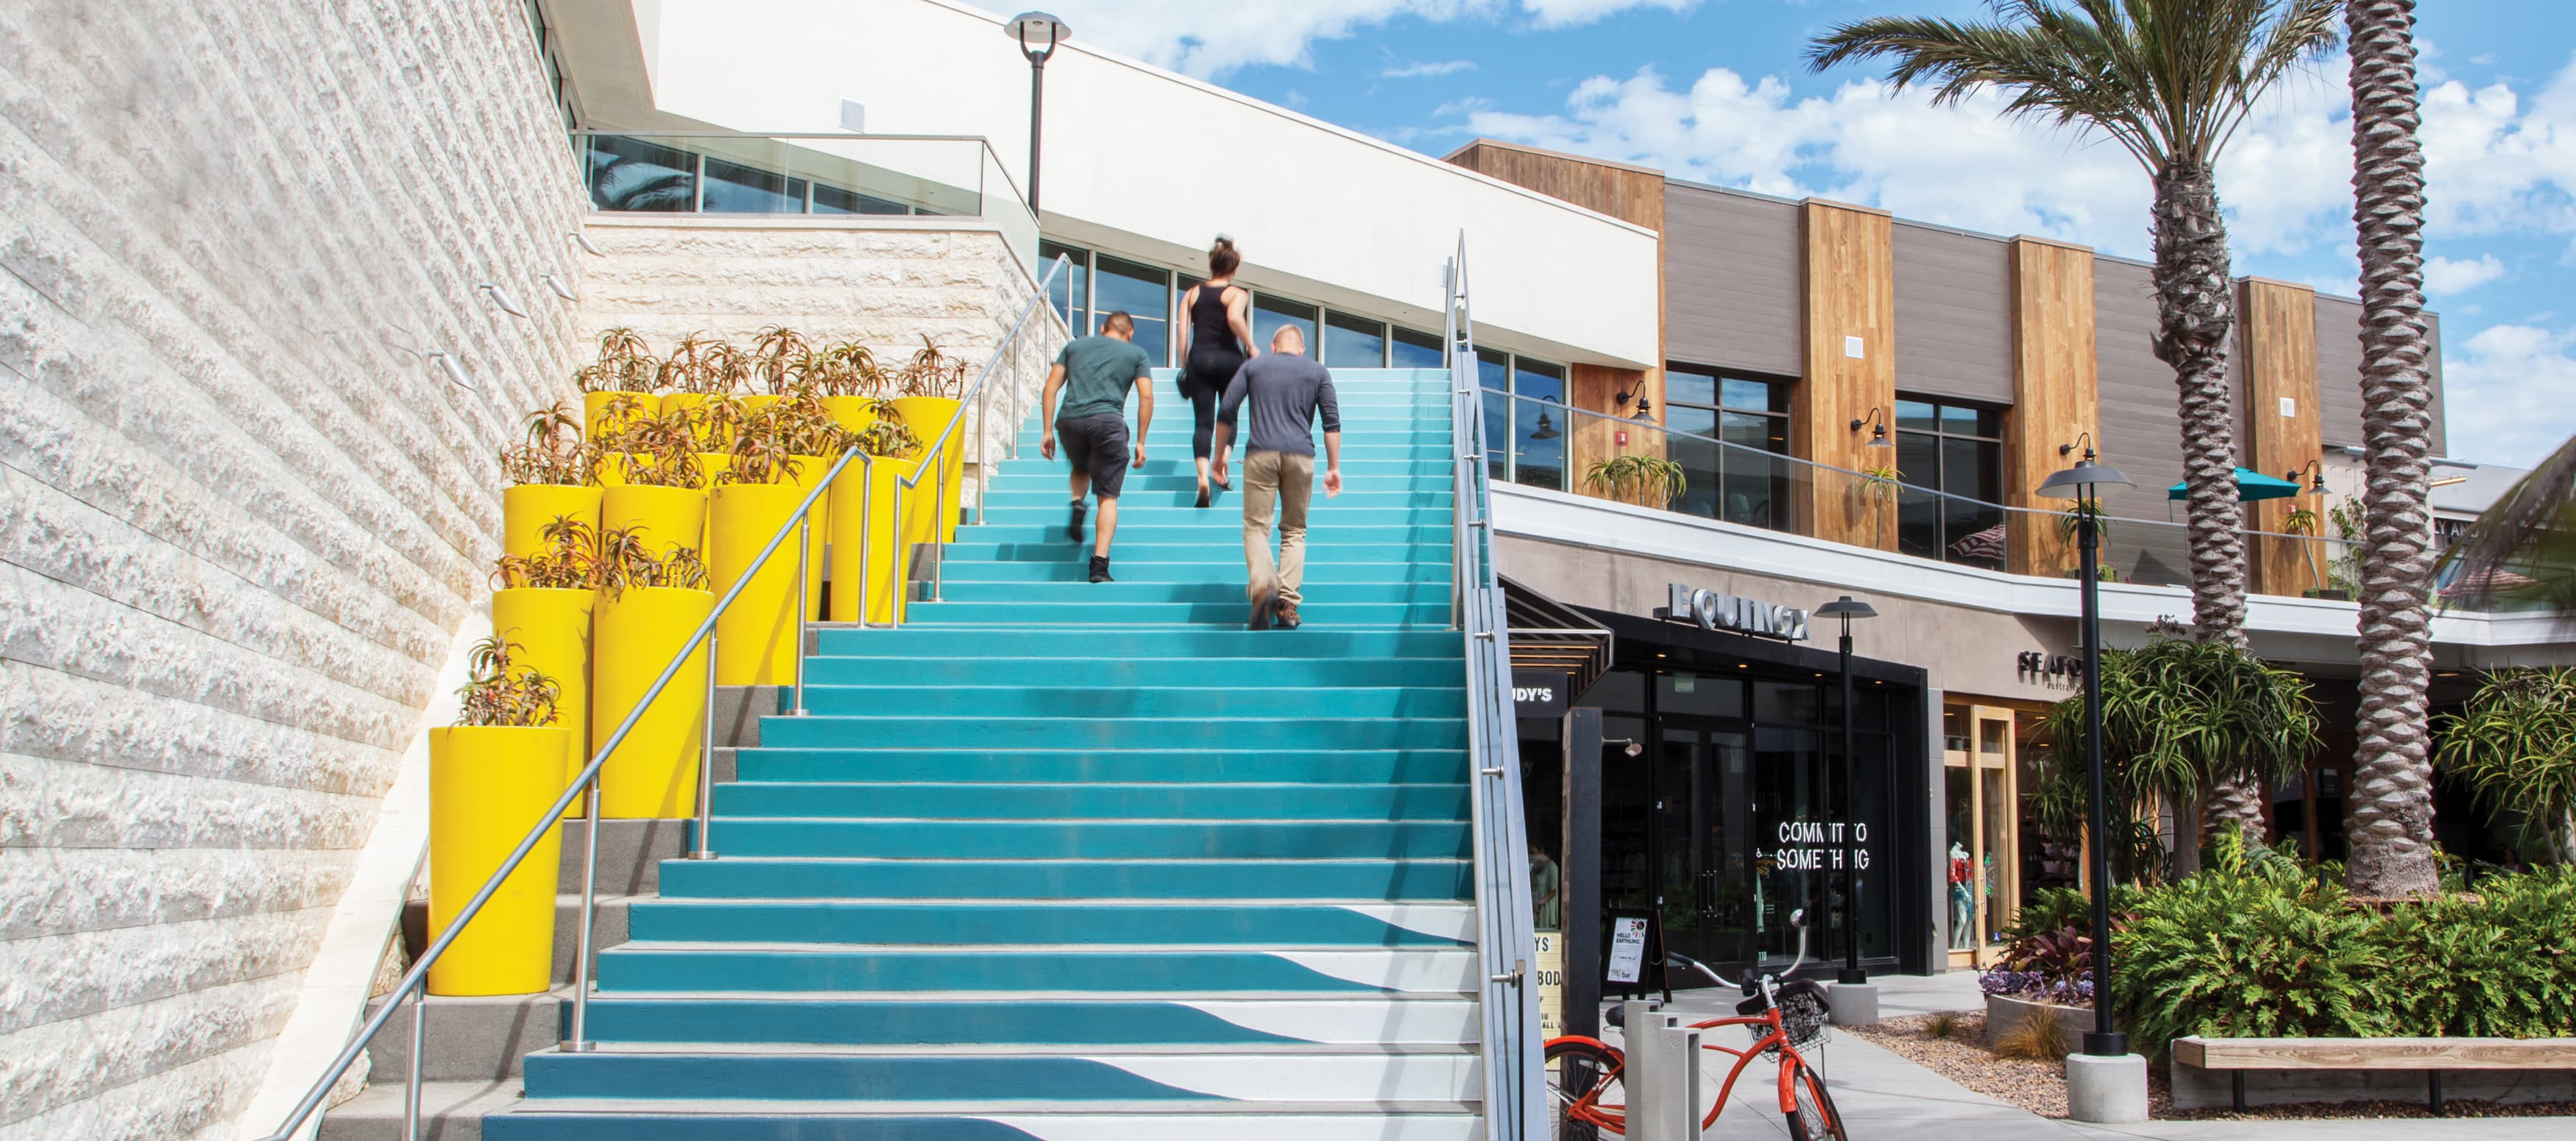 A group of people walk up a flight of stairs painted shades of blue to mimic ocean waves at an outdoor retail center